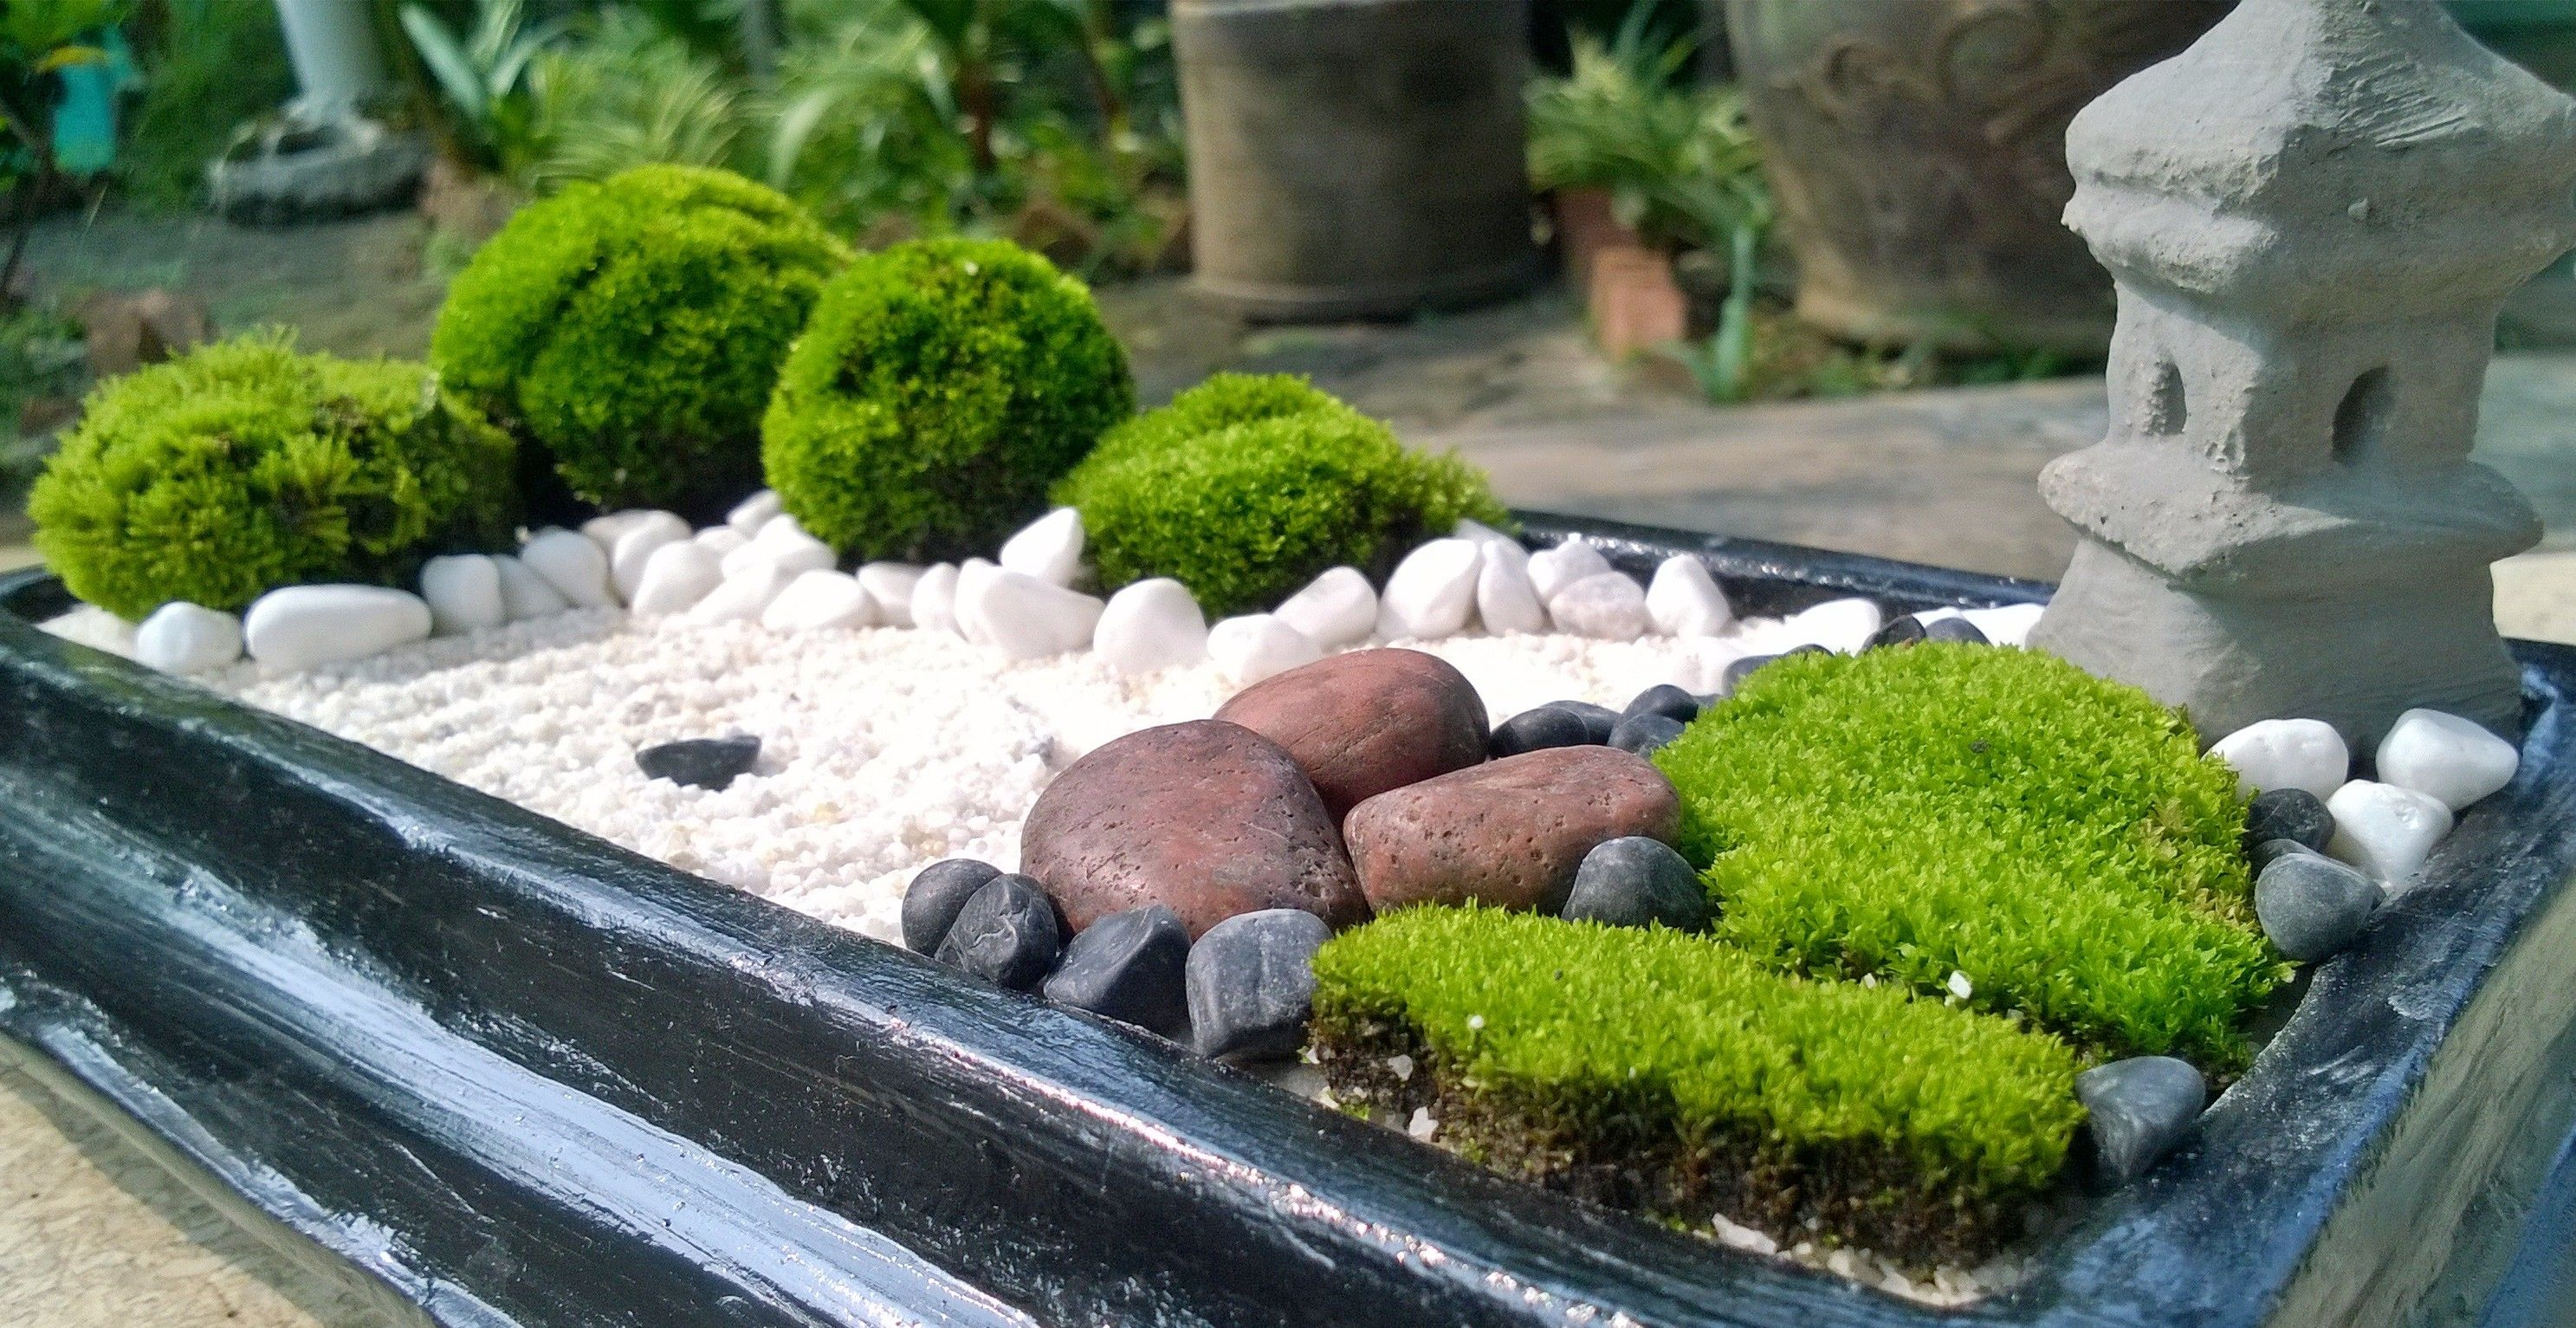 For That Reason It S Not Difficult To Comprehend Why The Idea Of A Japanese Garden Would Be Such Japanese Garden Design Zen Garden Design Miniature Zen Garden